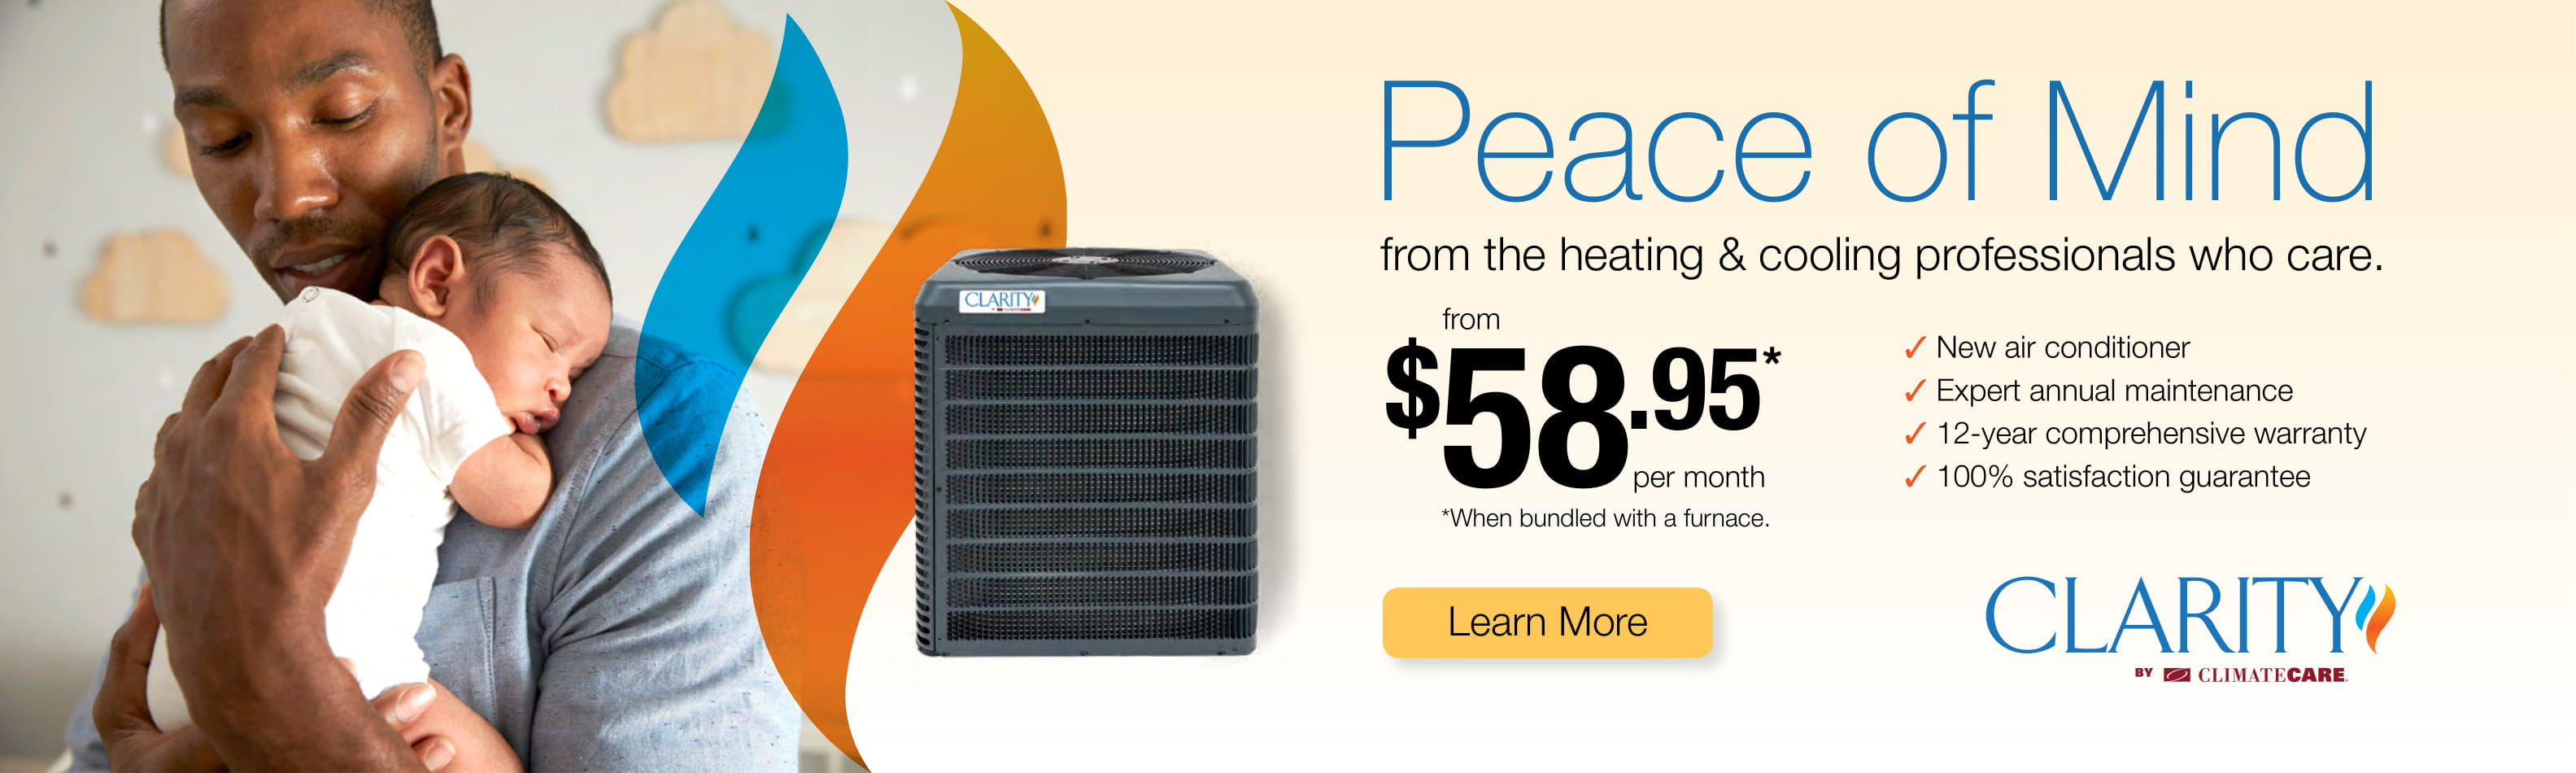 Peace of Mind - AC Install